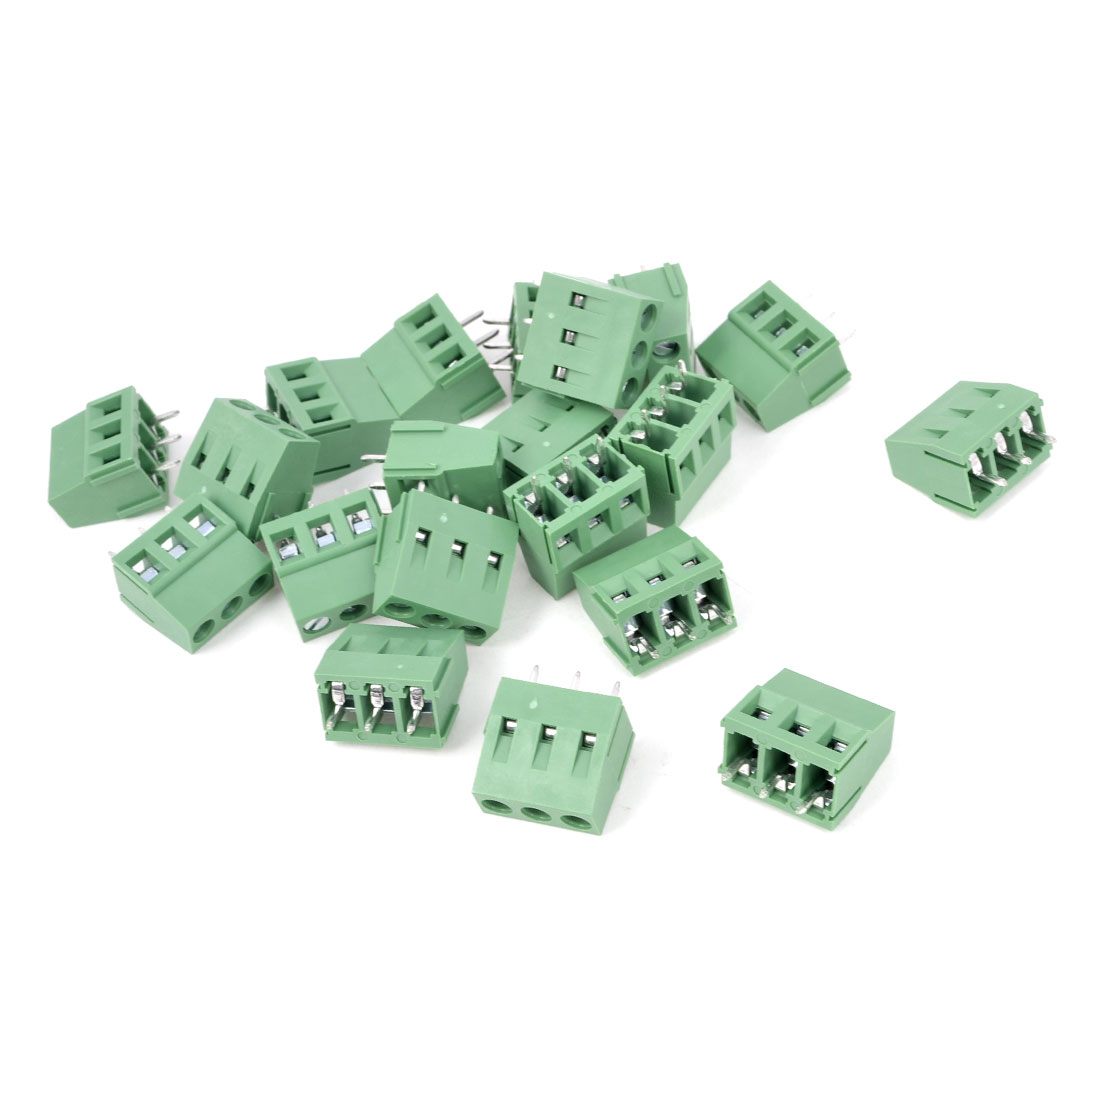 20Pcs 300V 10A 3P Poles PCB Screw Terminal Block Connector 5mm Pitch Green